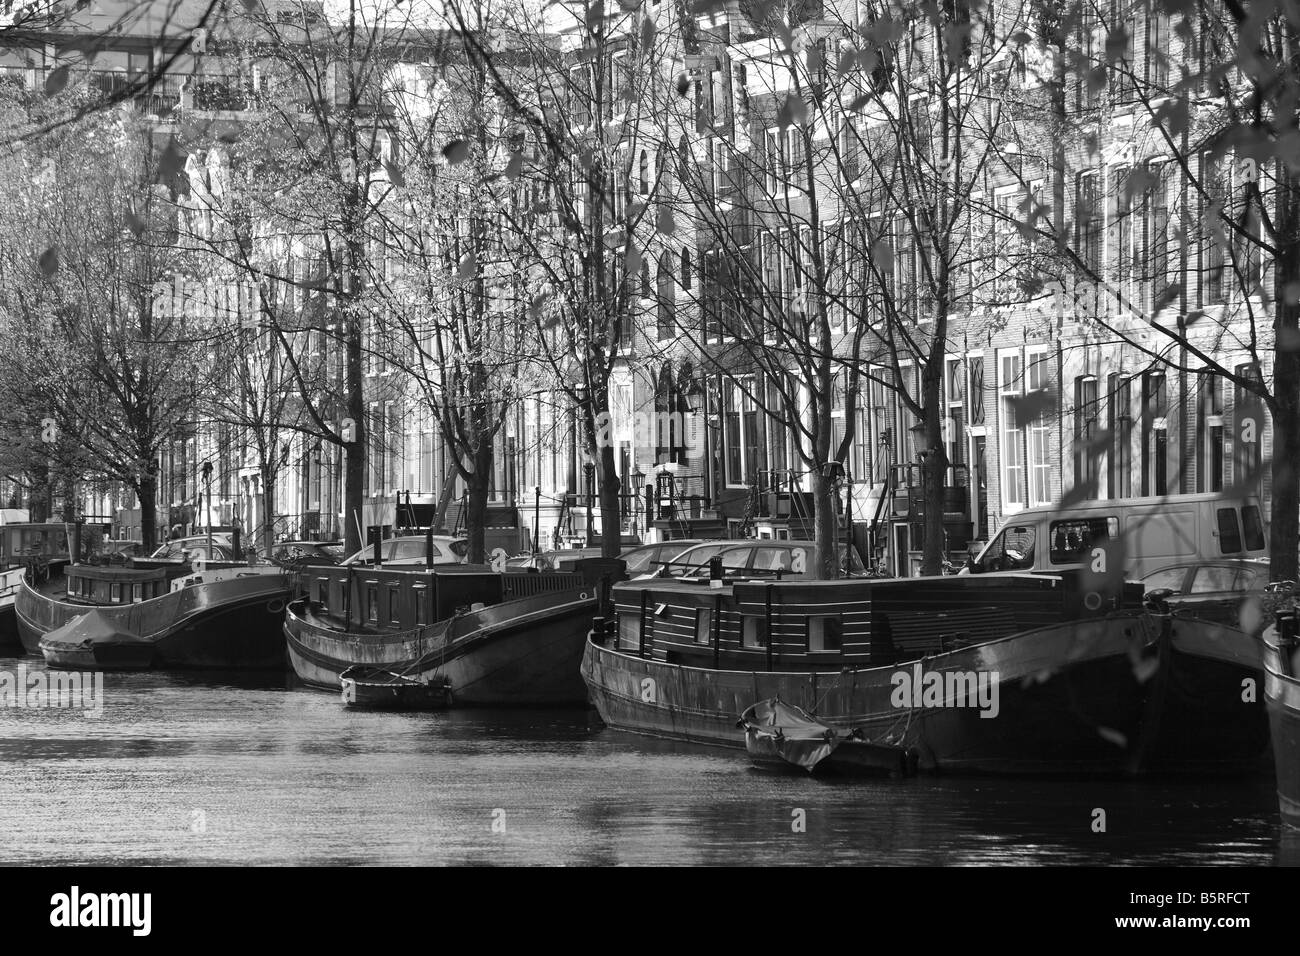 Boats and barges lined up along the Prinsengracht, Amsterdam, Netherlands - Stock Image